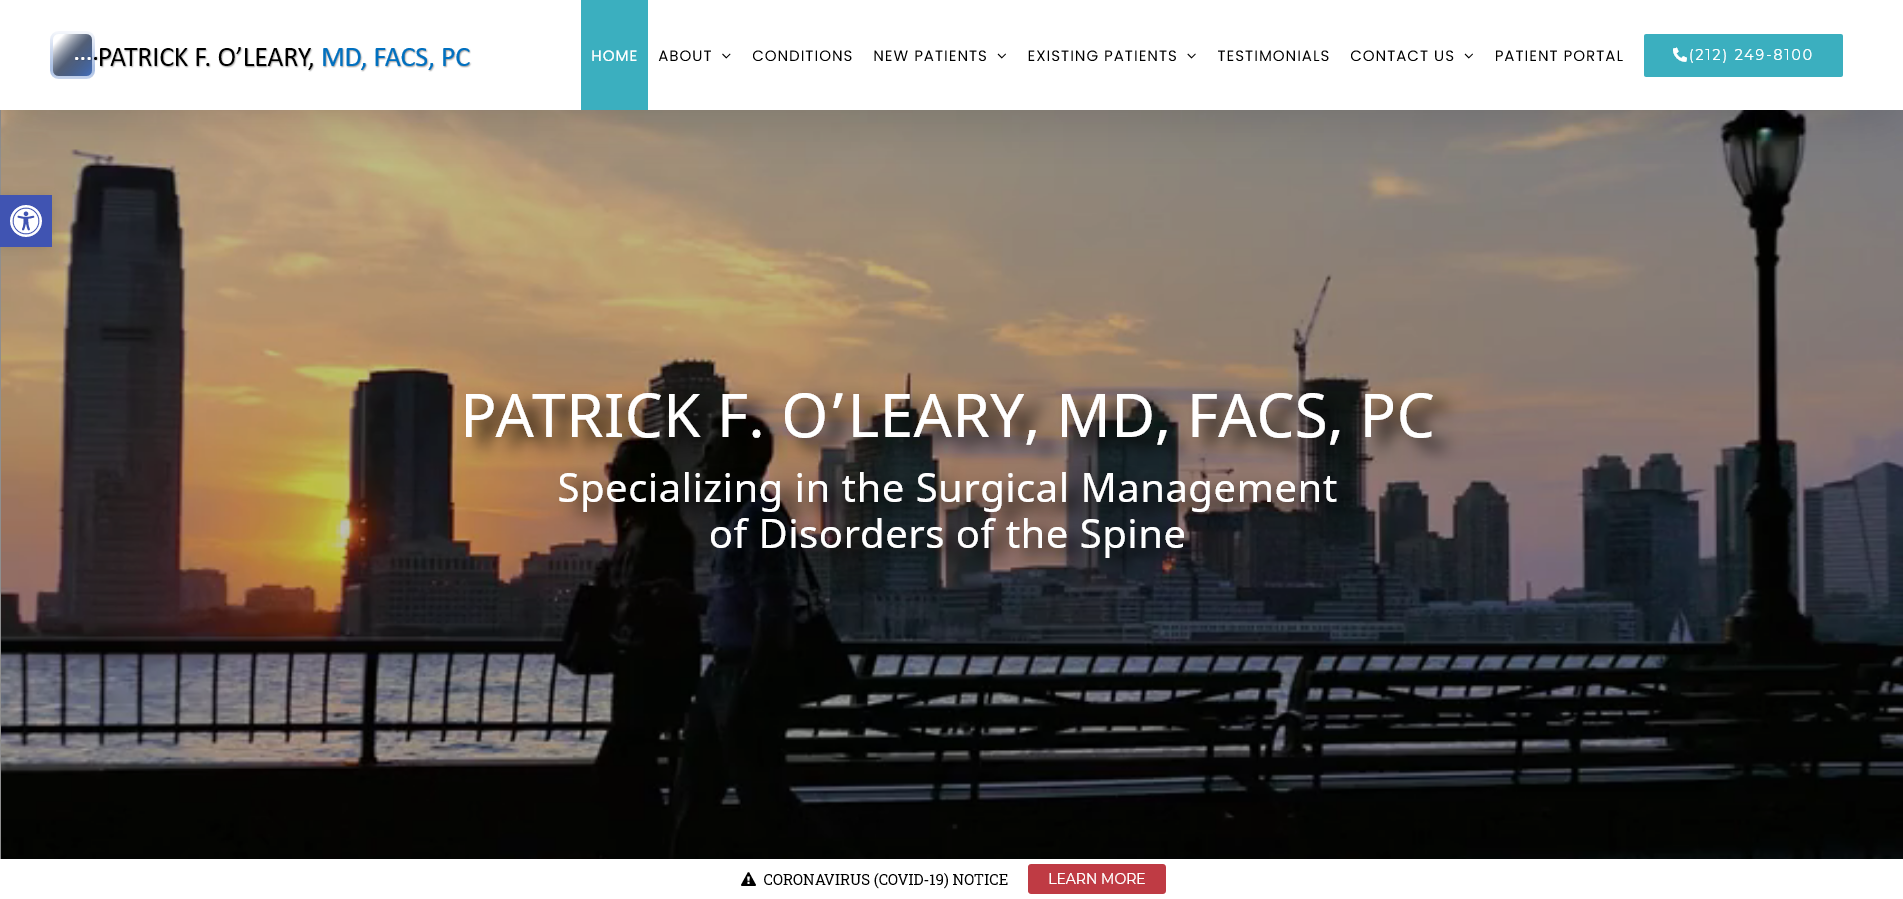 Dr. Patrick F. O'Leary, website design by Westside Virtual